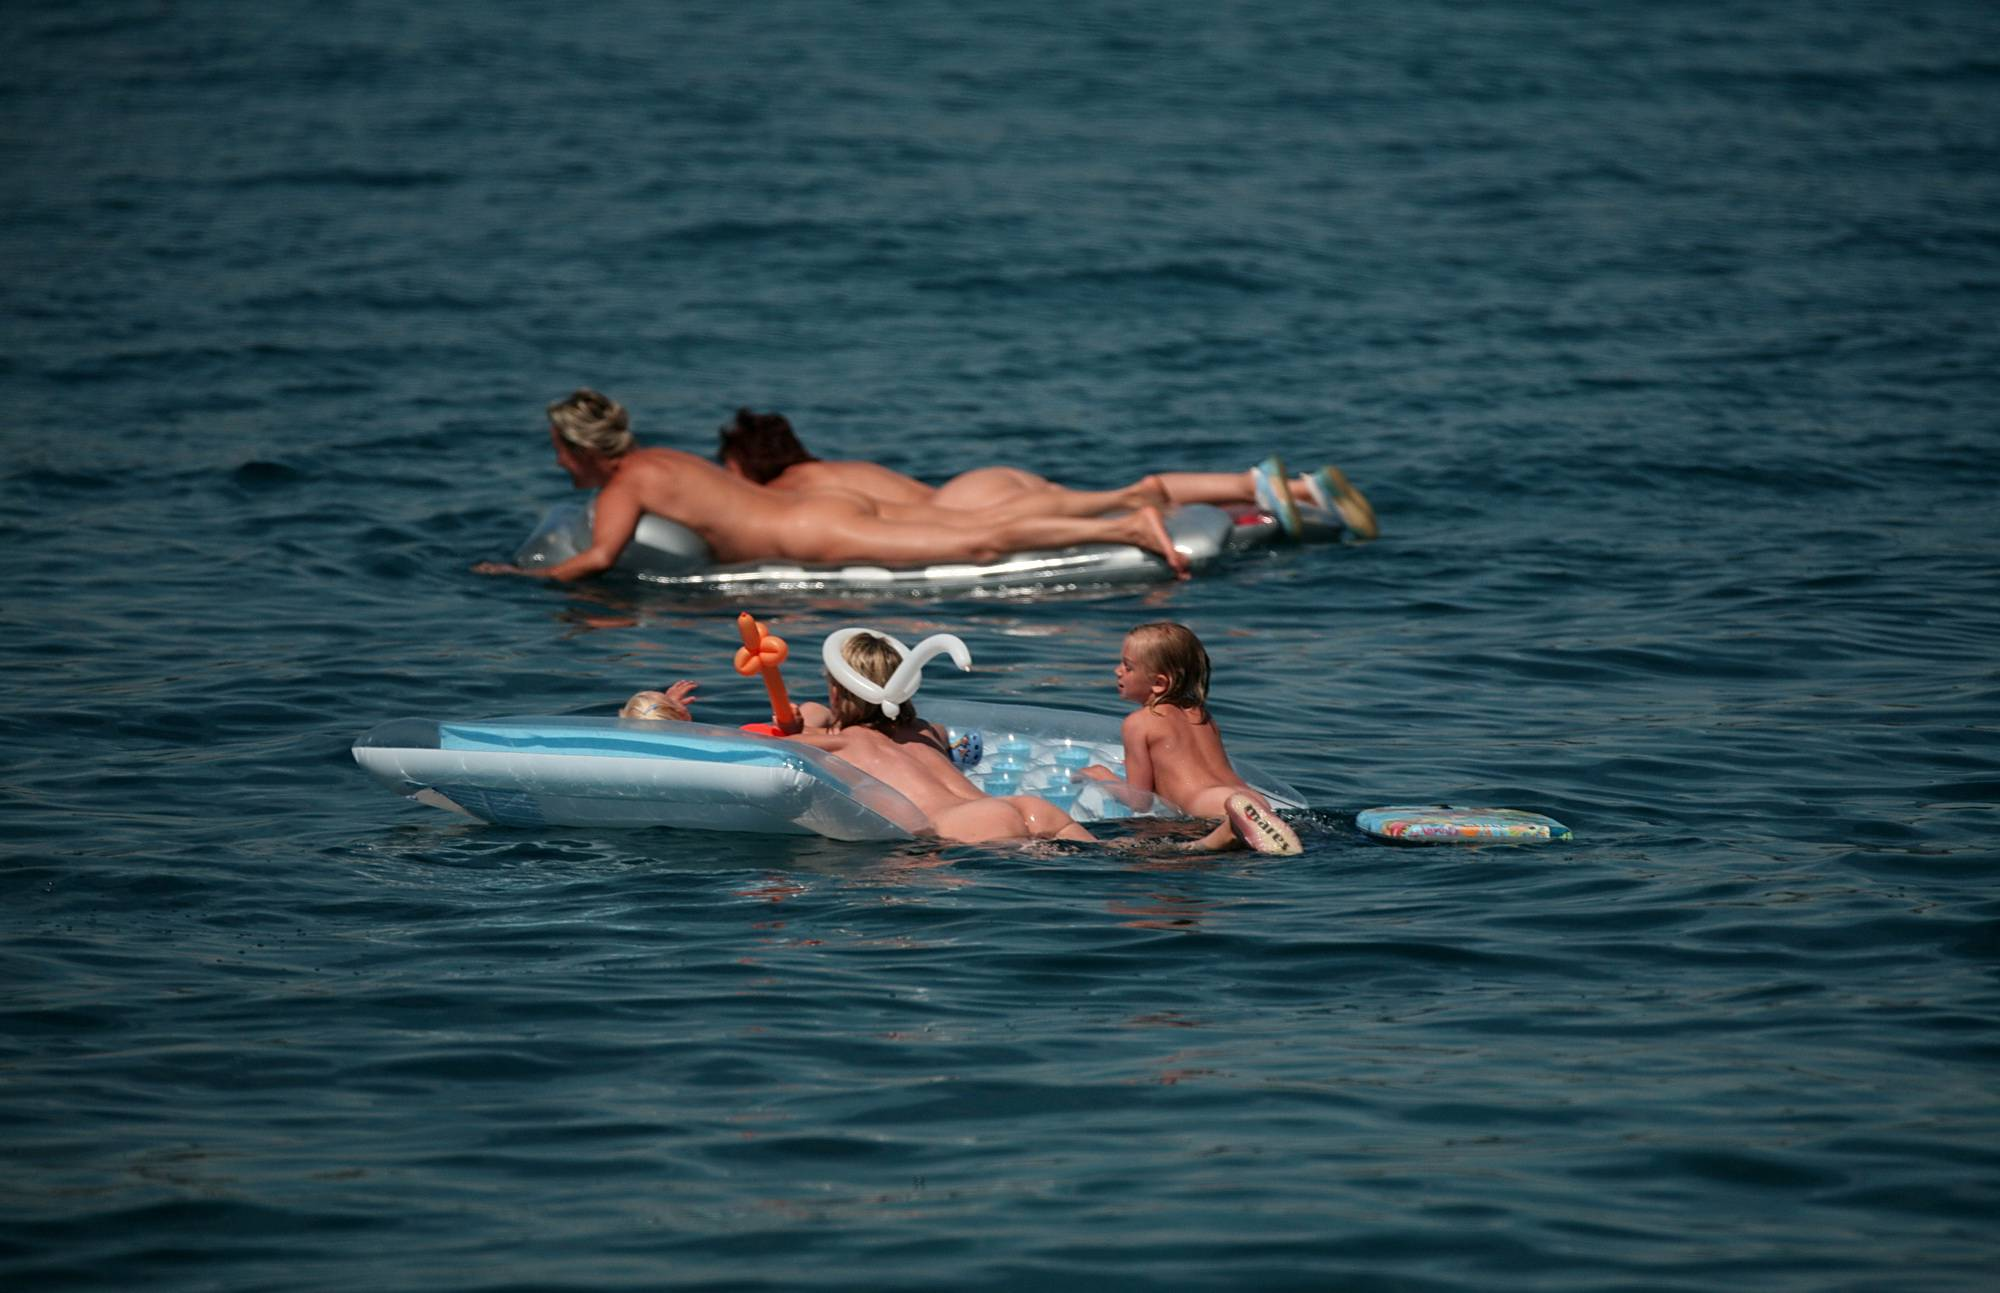 Purenudism Photos-Swimming With Float Rafts - 1